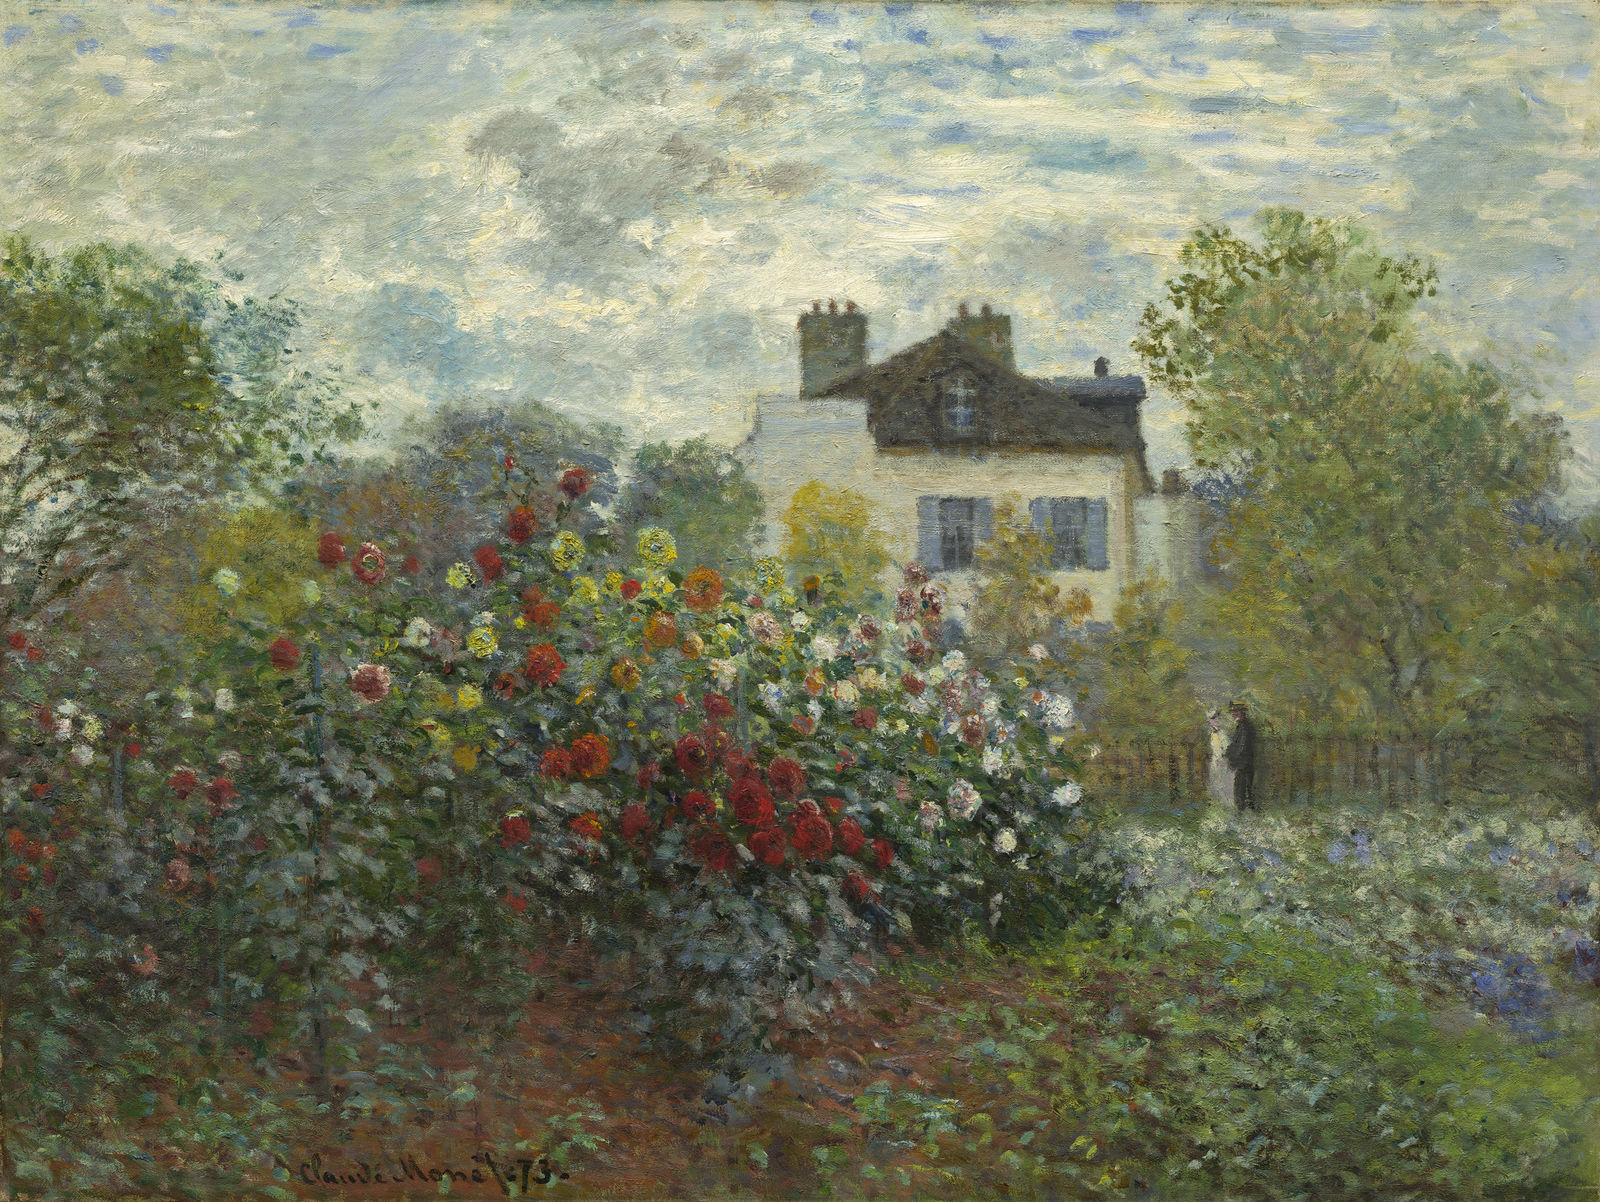 Monet, The Artist's Garden in Argenteuil, 1873